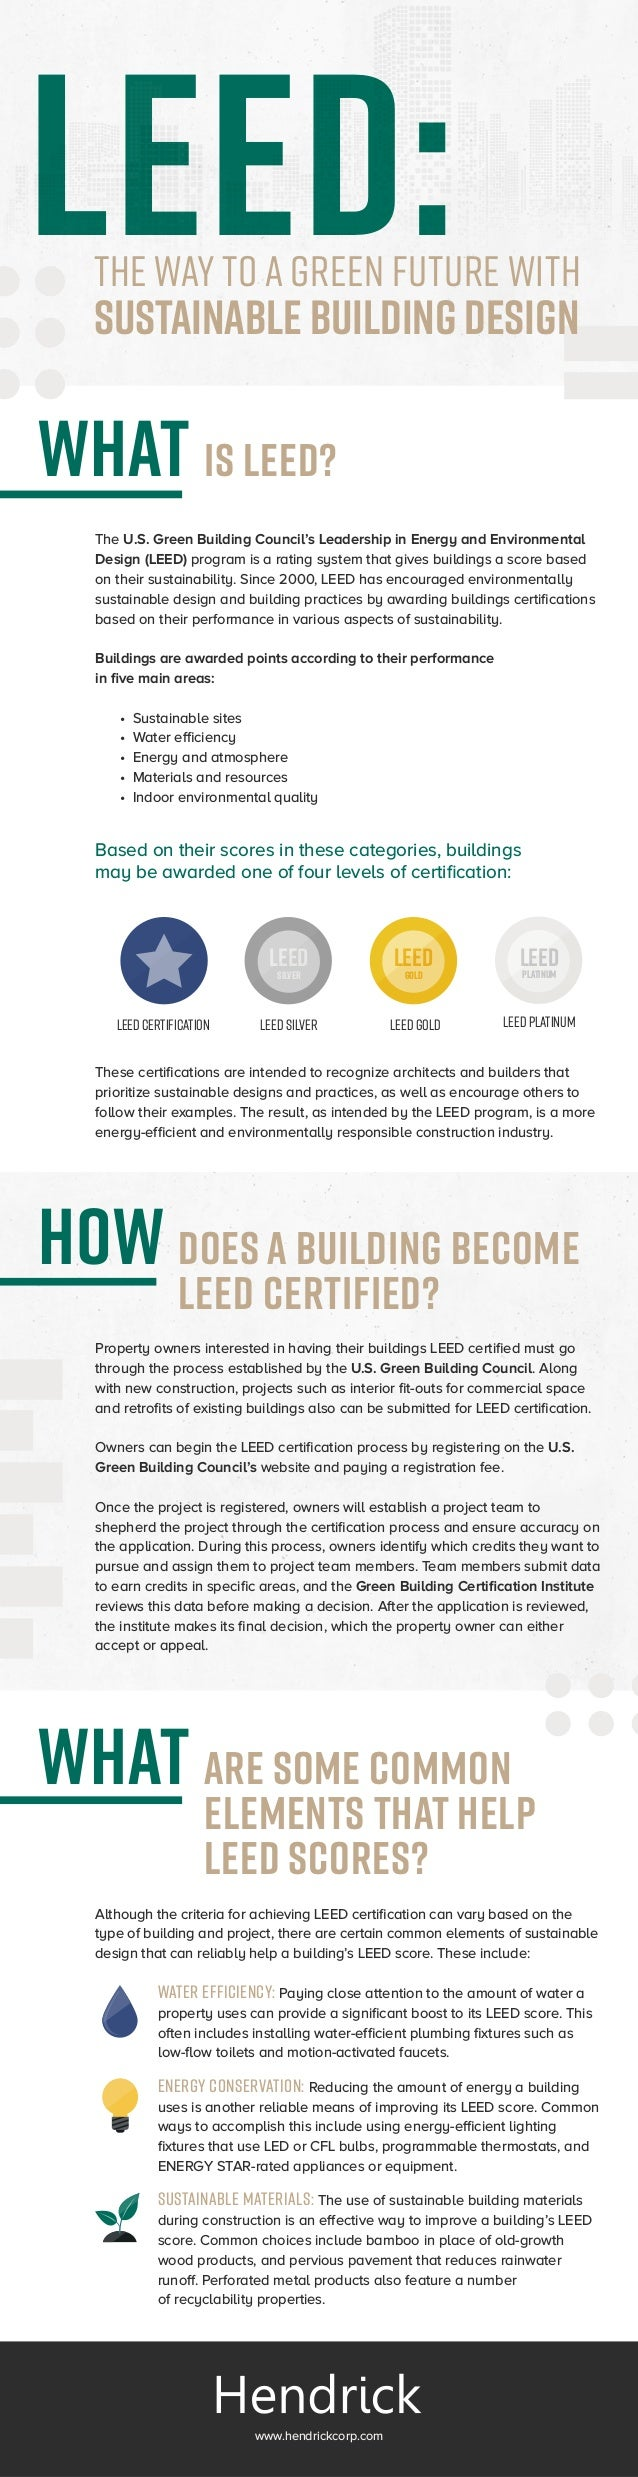 U.S. Green Building Council's Leadership in Energy and Environmental Design (LEED)